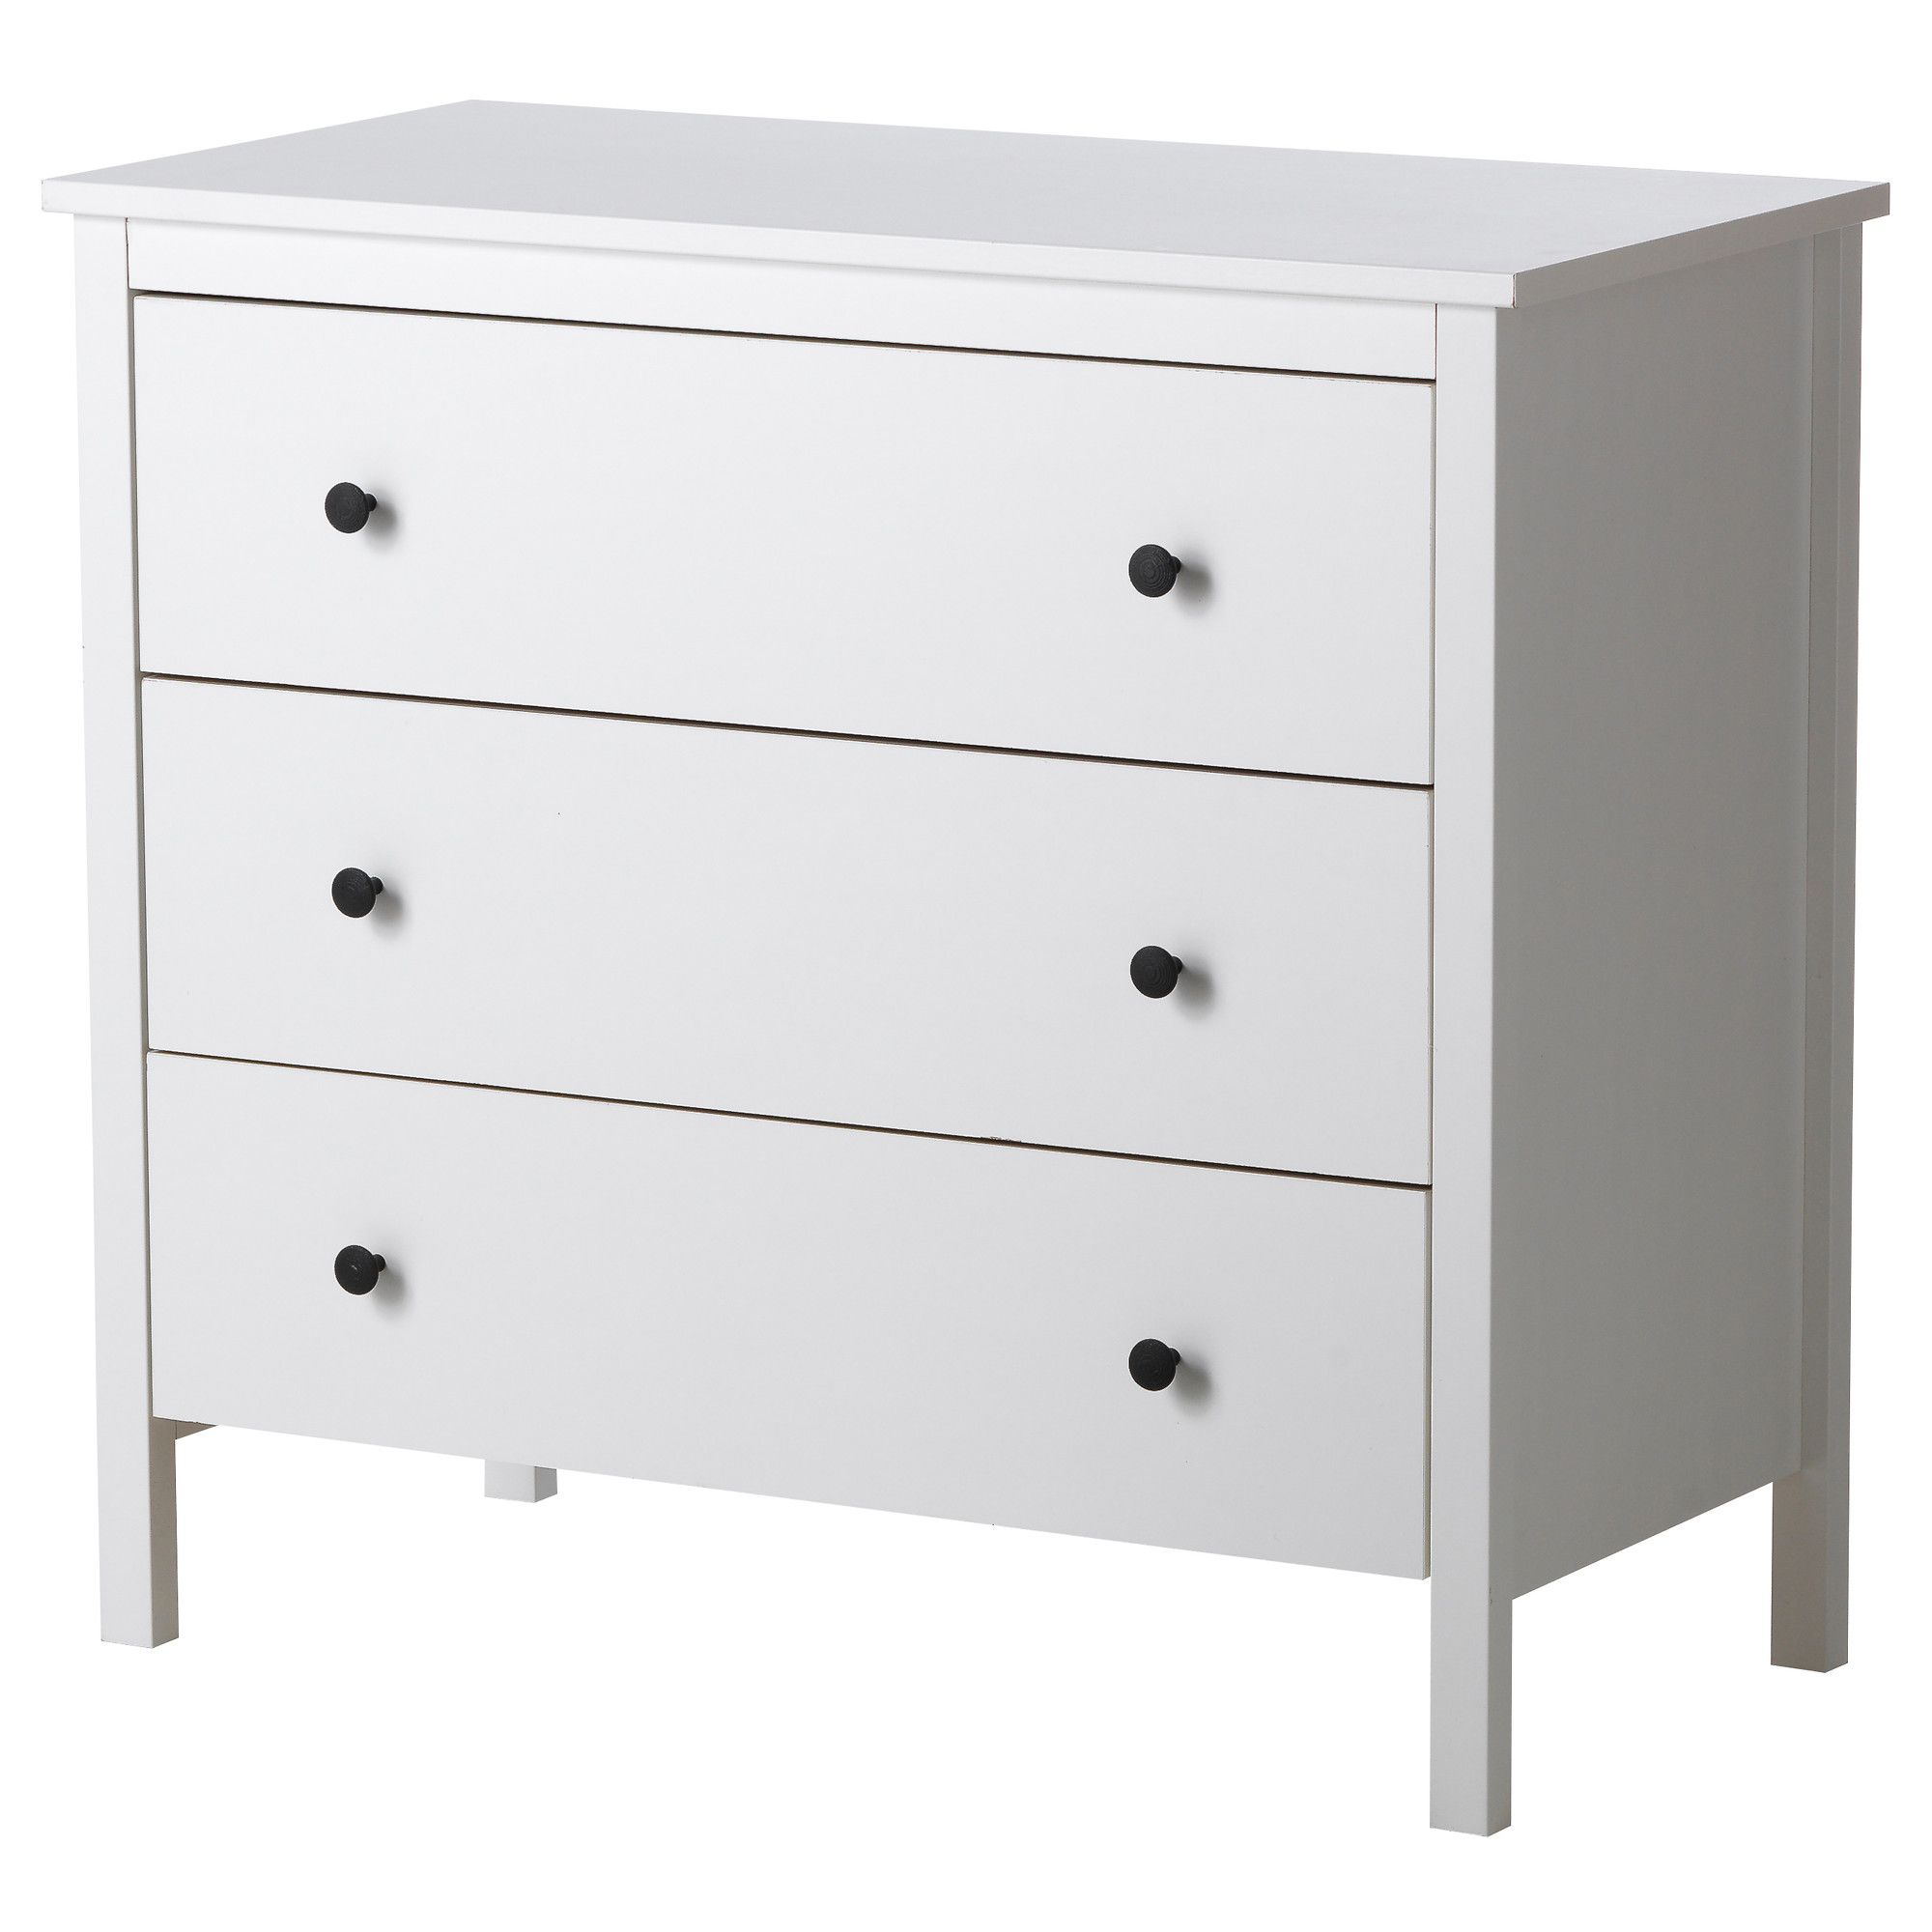 This Dresser Will Fit Perfectly In Our Small Space I Plan To Make